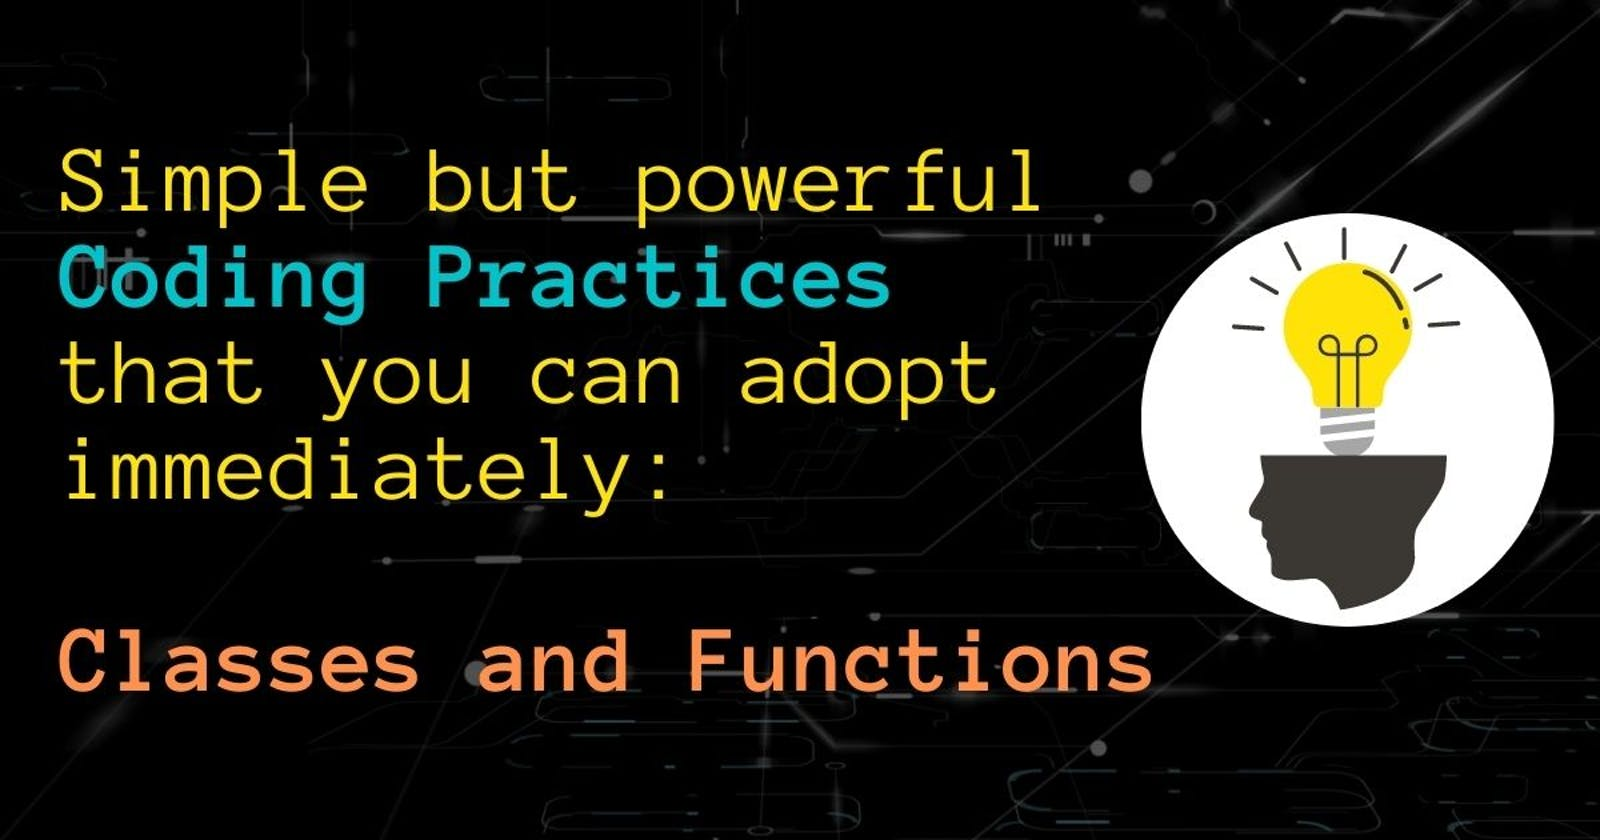 Simple but powerful Coding Practices that you can adopt immediately: Classes and Functions